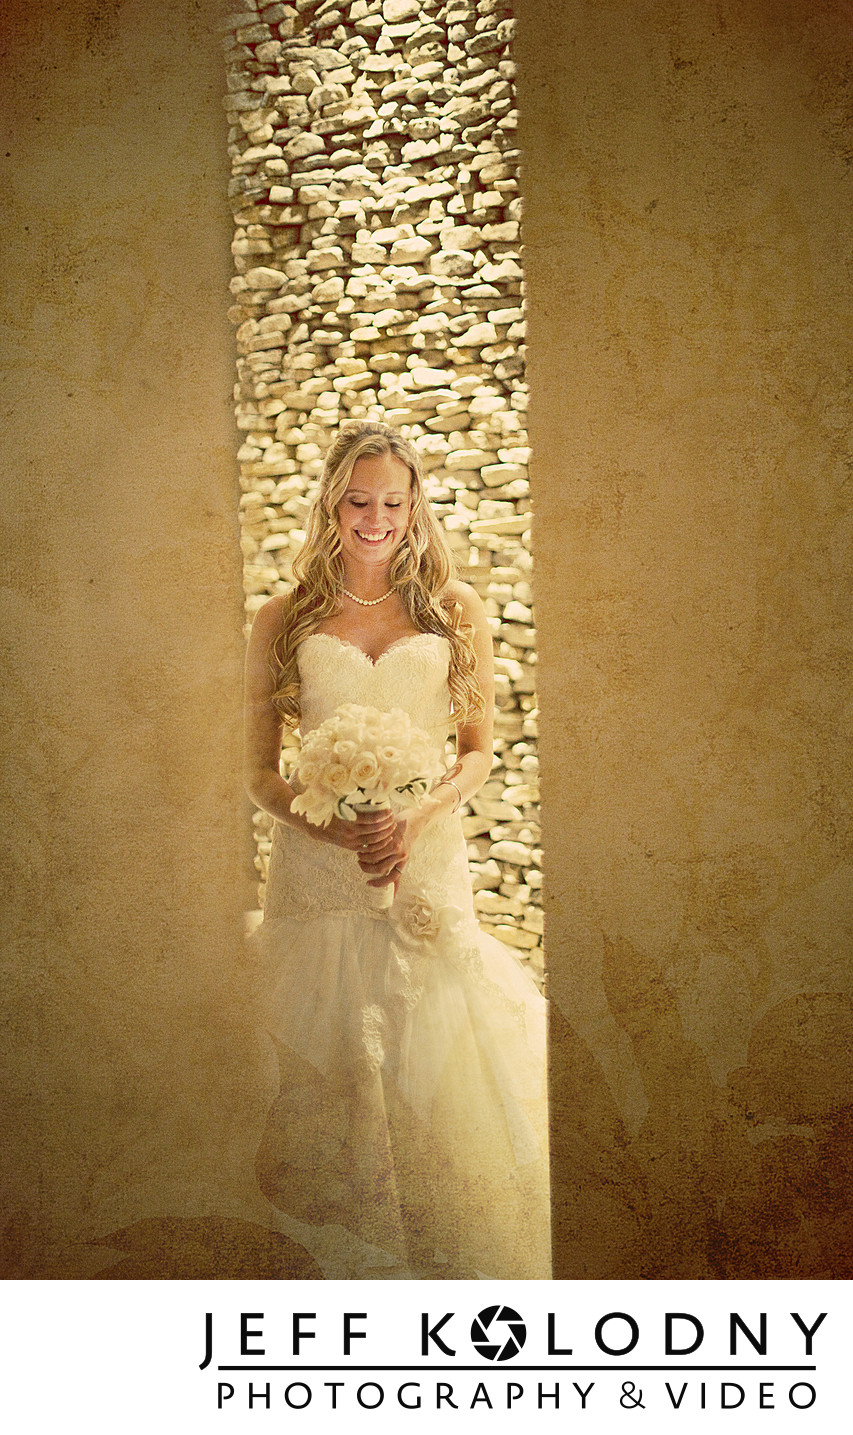 Creative bride photo taken at Turnberry Isles.